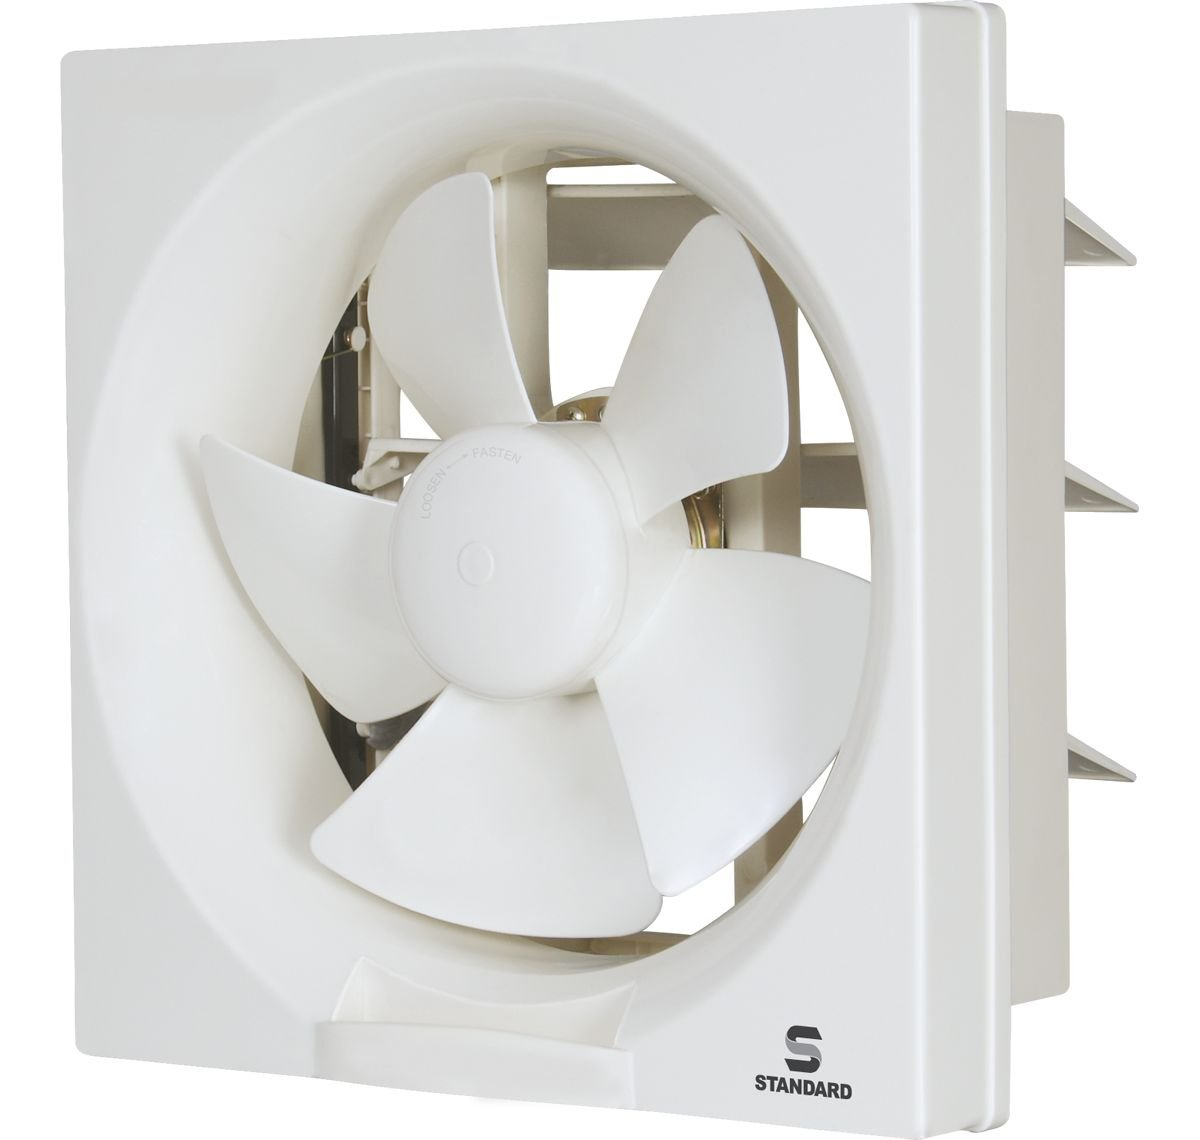 climacool air conditioning